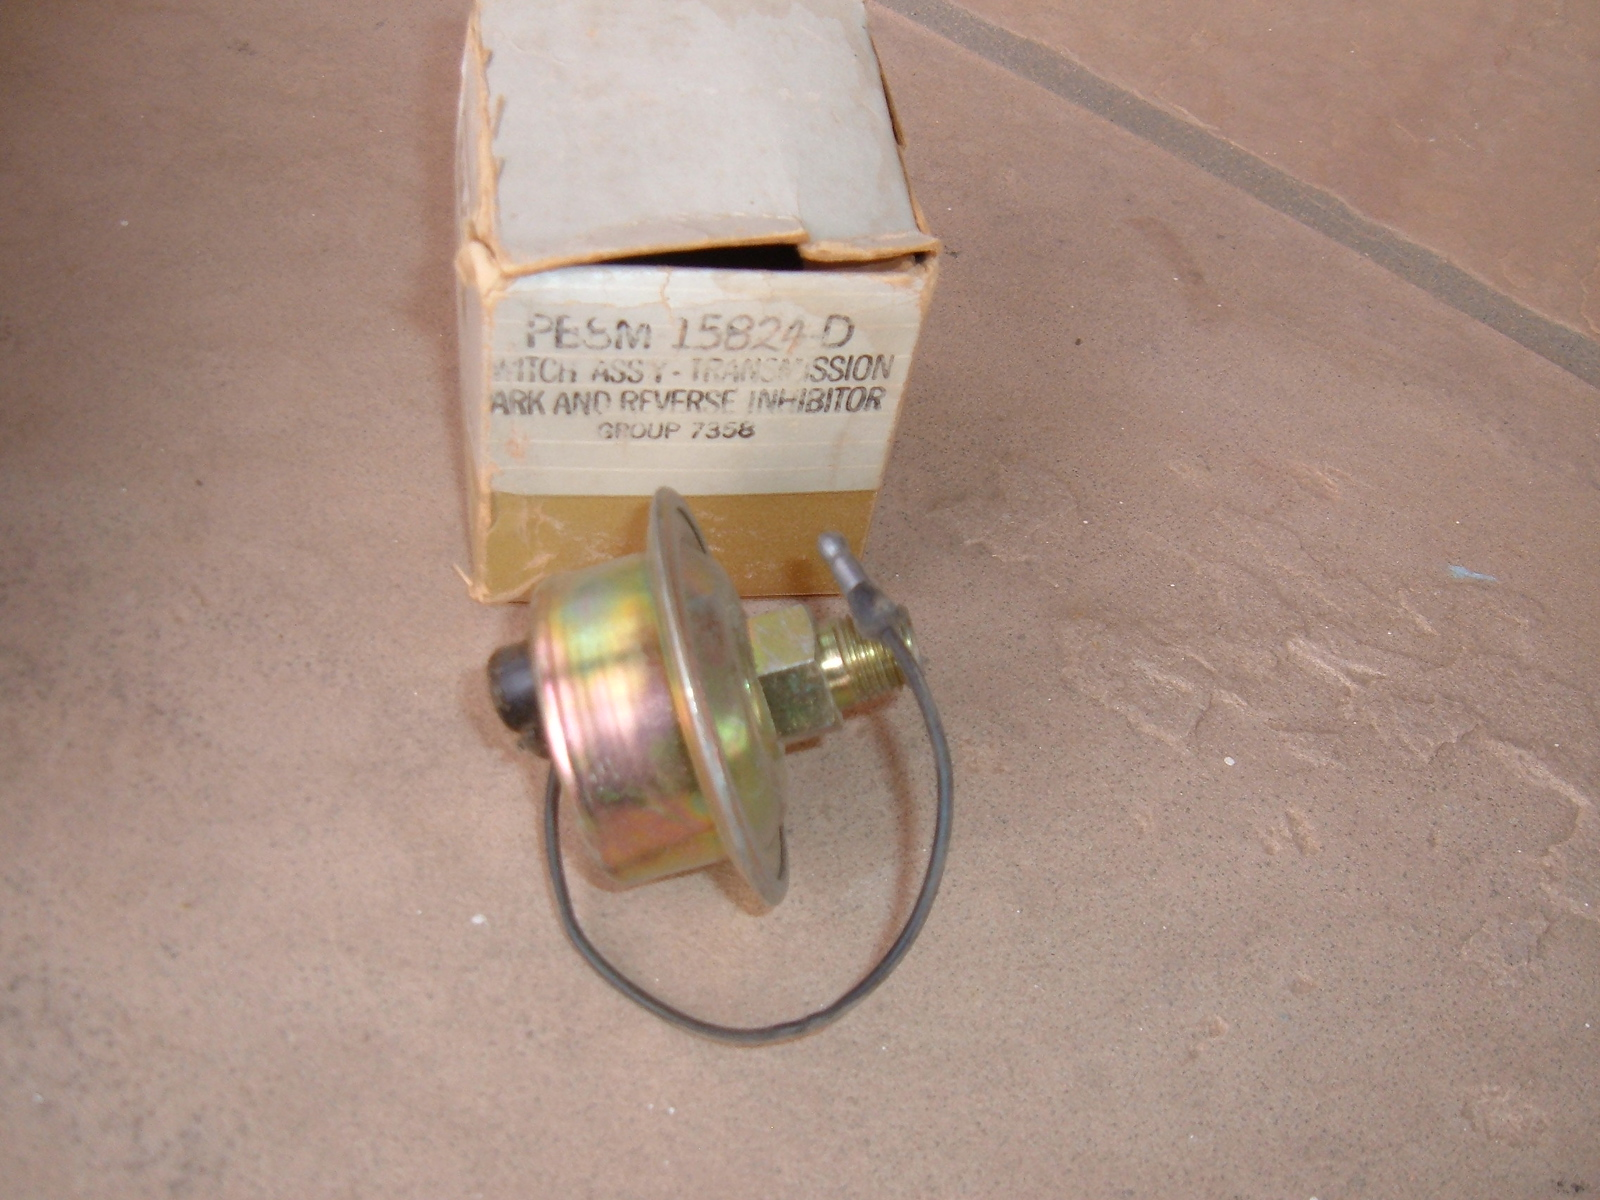 1958 lincoln mercury automatic transmission park and reverse inhibitor nos ford PB8M-15824-D (z pb8m15824d)